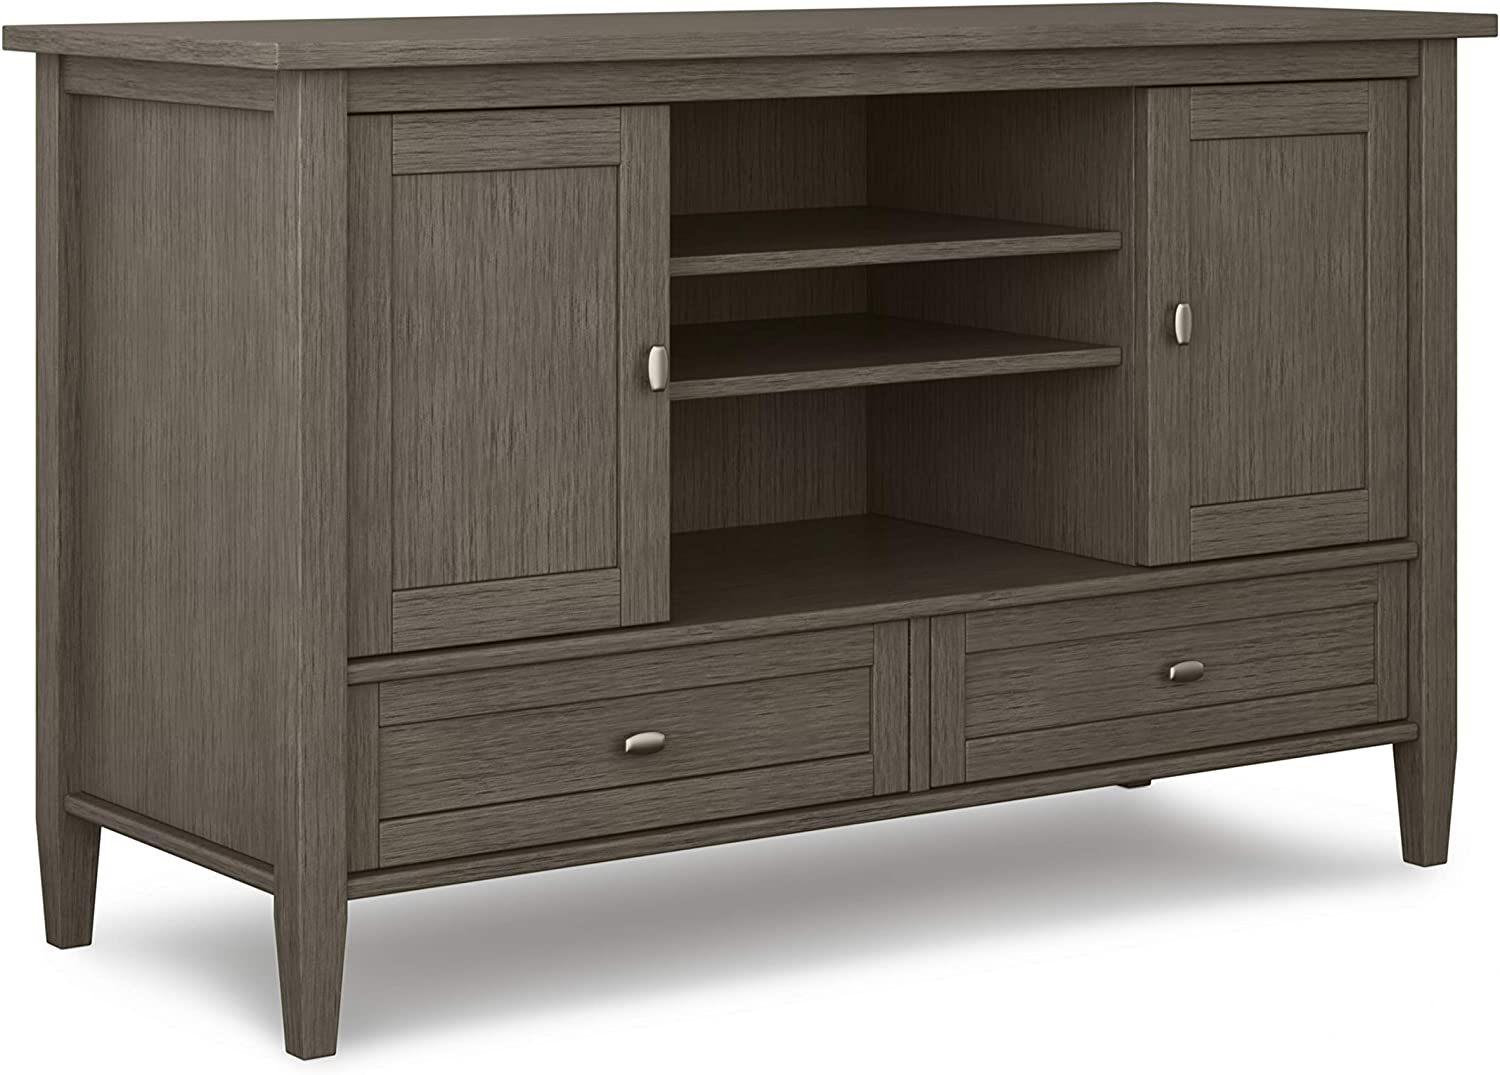 SIMPLIHOME Warm Shaker SOLID WOOD Universal TV Media Stand, 47 inch Wide, Farmhouse Rustic, Living Room Entertainment Center, Storage Cabinet, for Flat Screen TVs up to 55